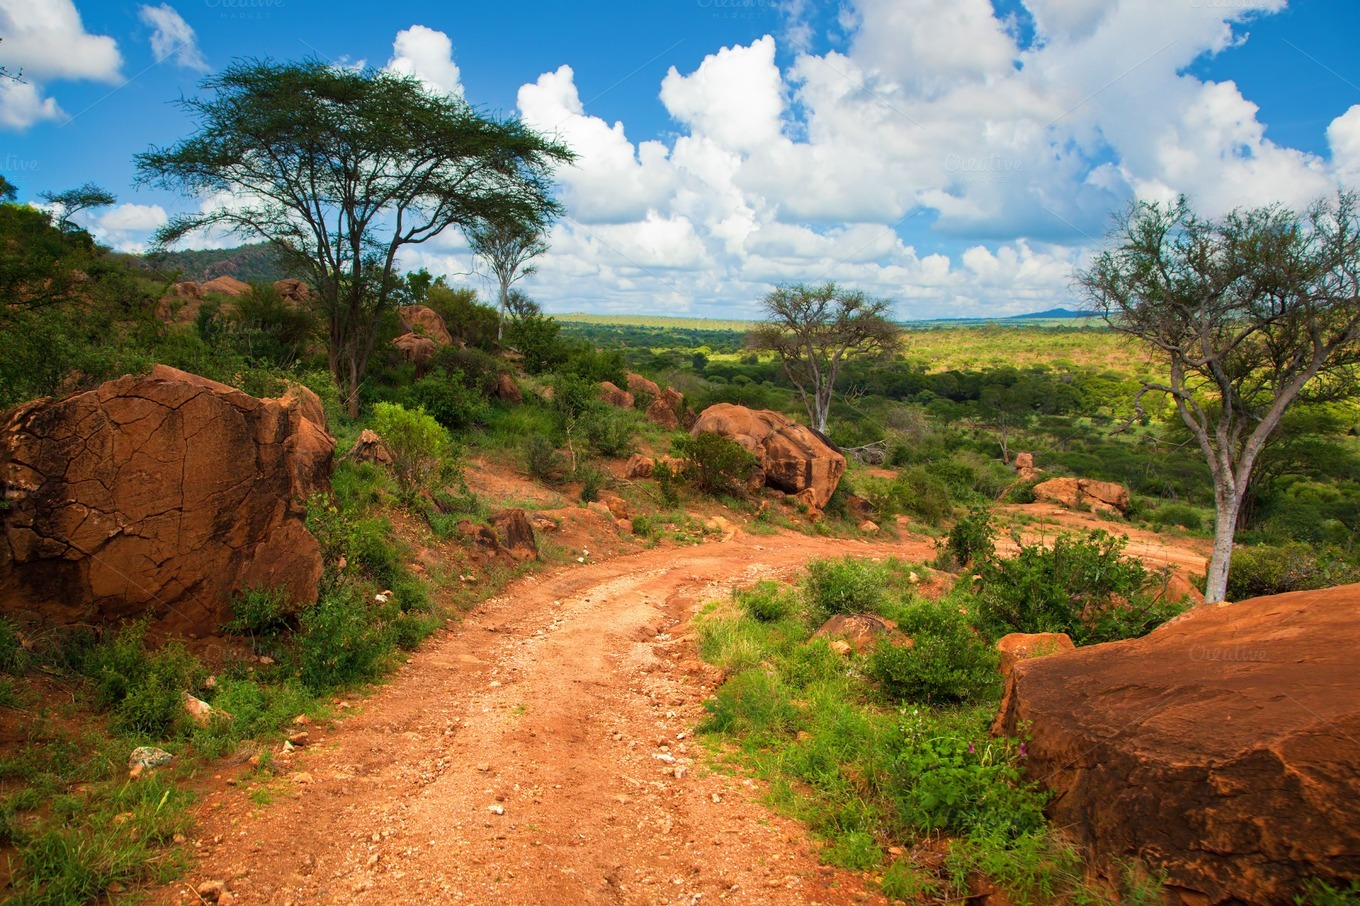 Savanna landscape in Africa ~ Nature Photos on Creative Market